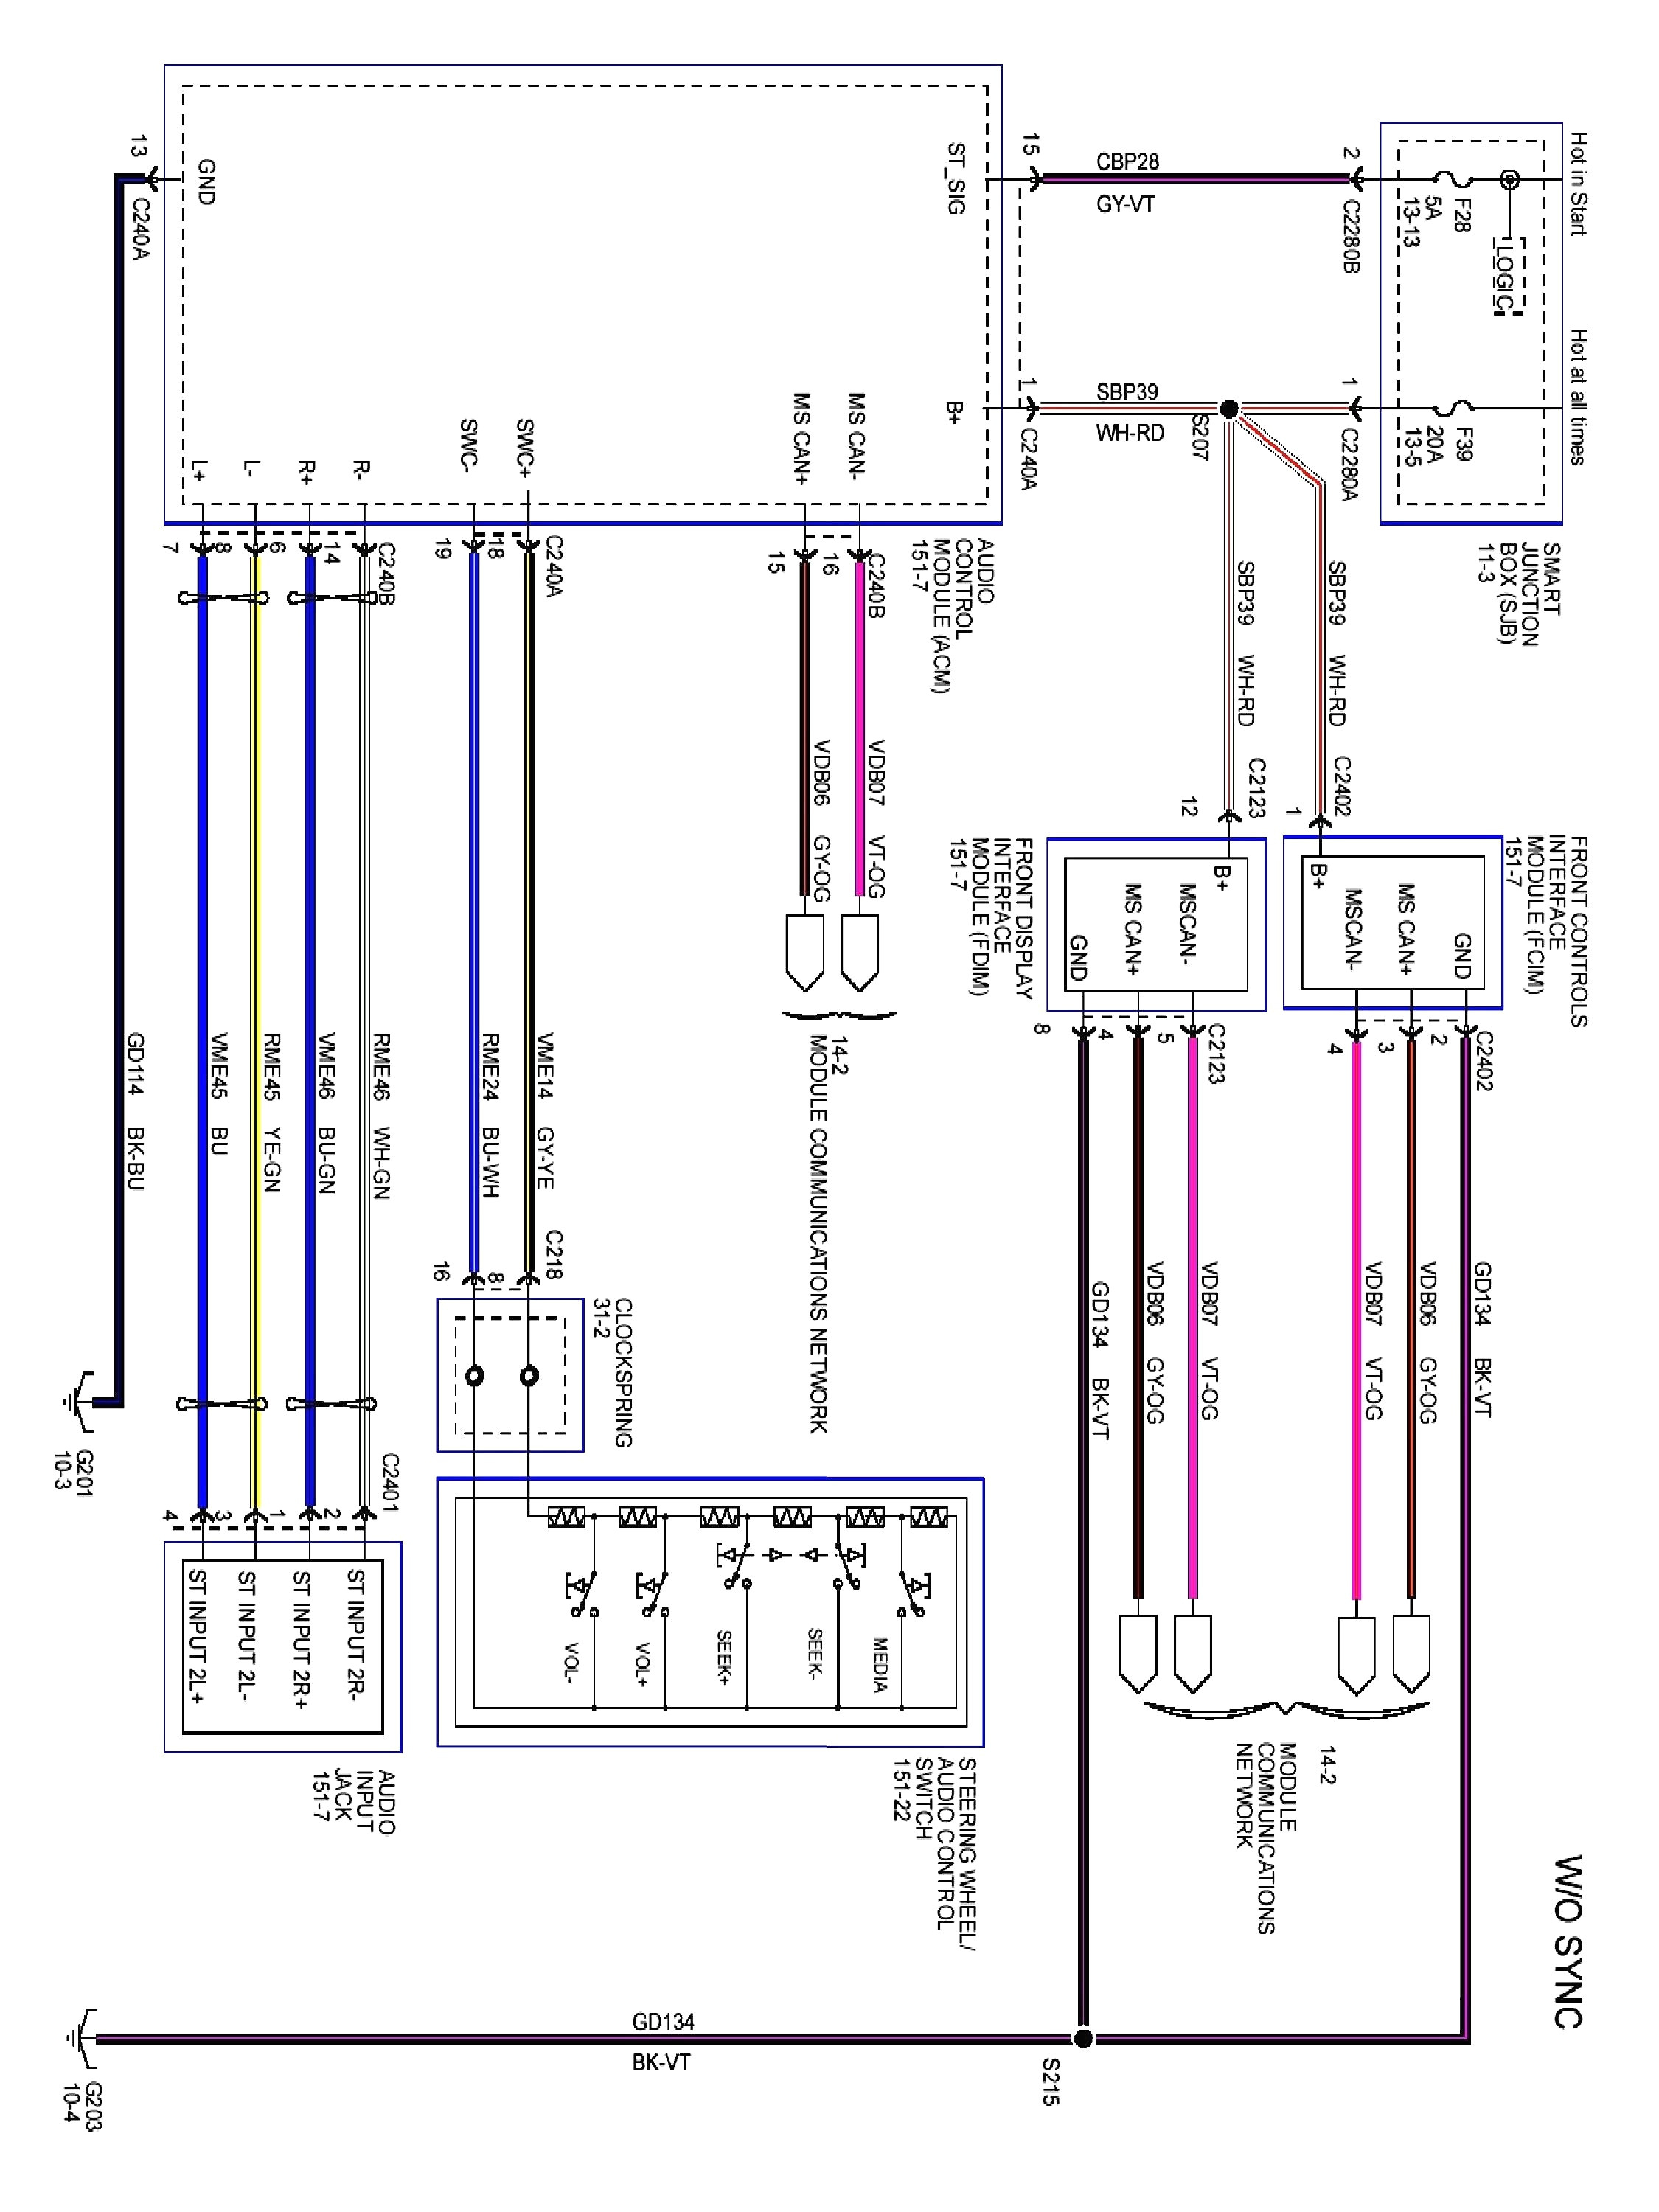 stereo wire harness diagram beautiful car stereo wiring diagram image